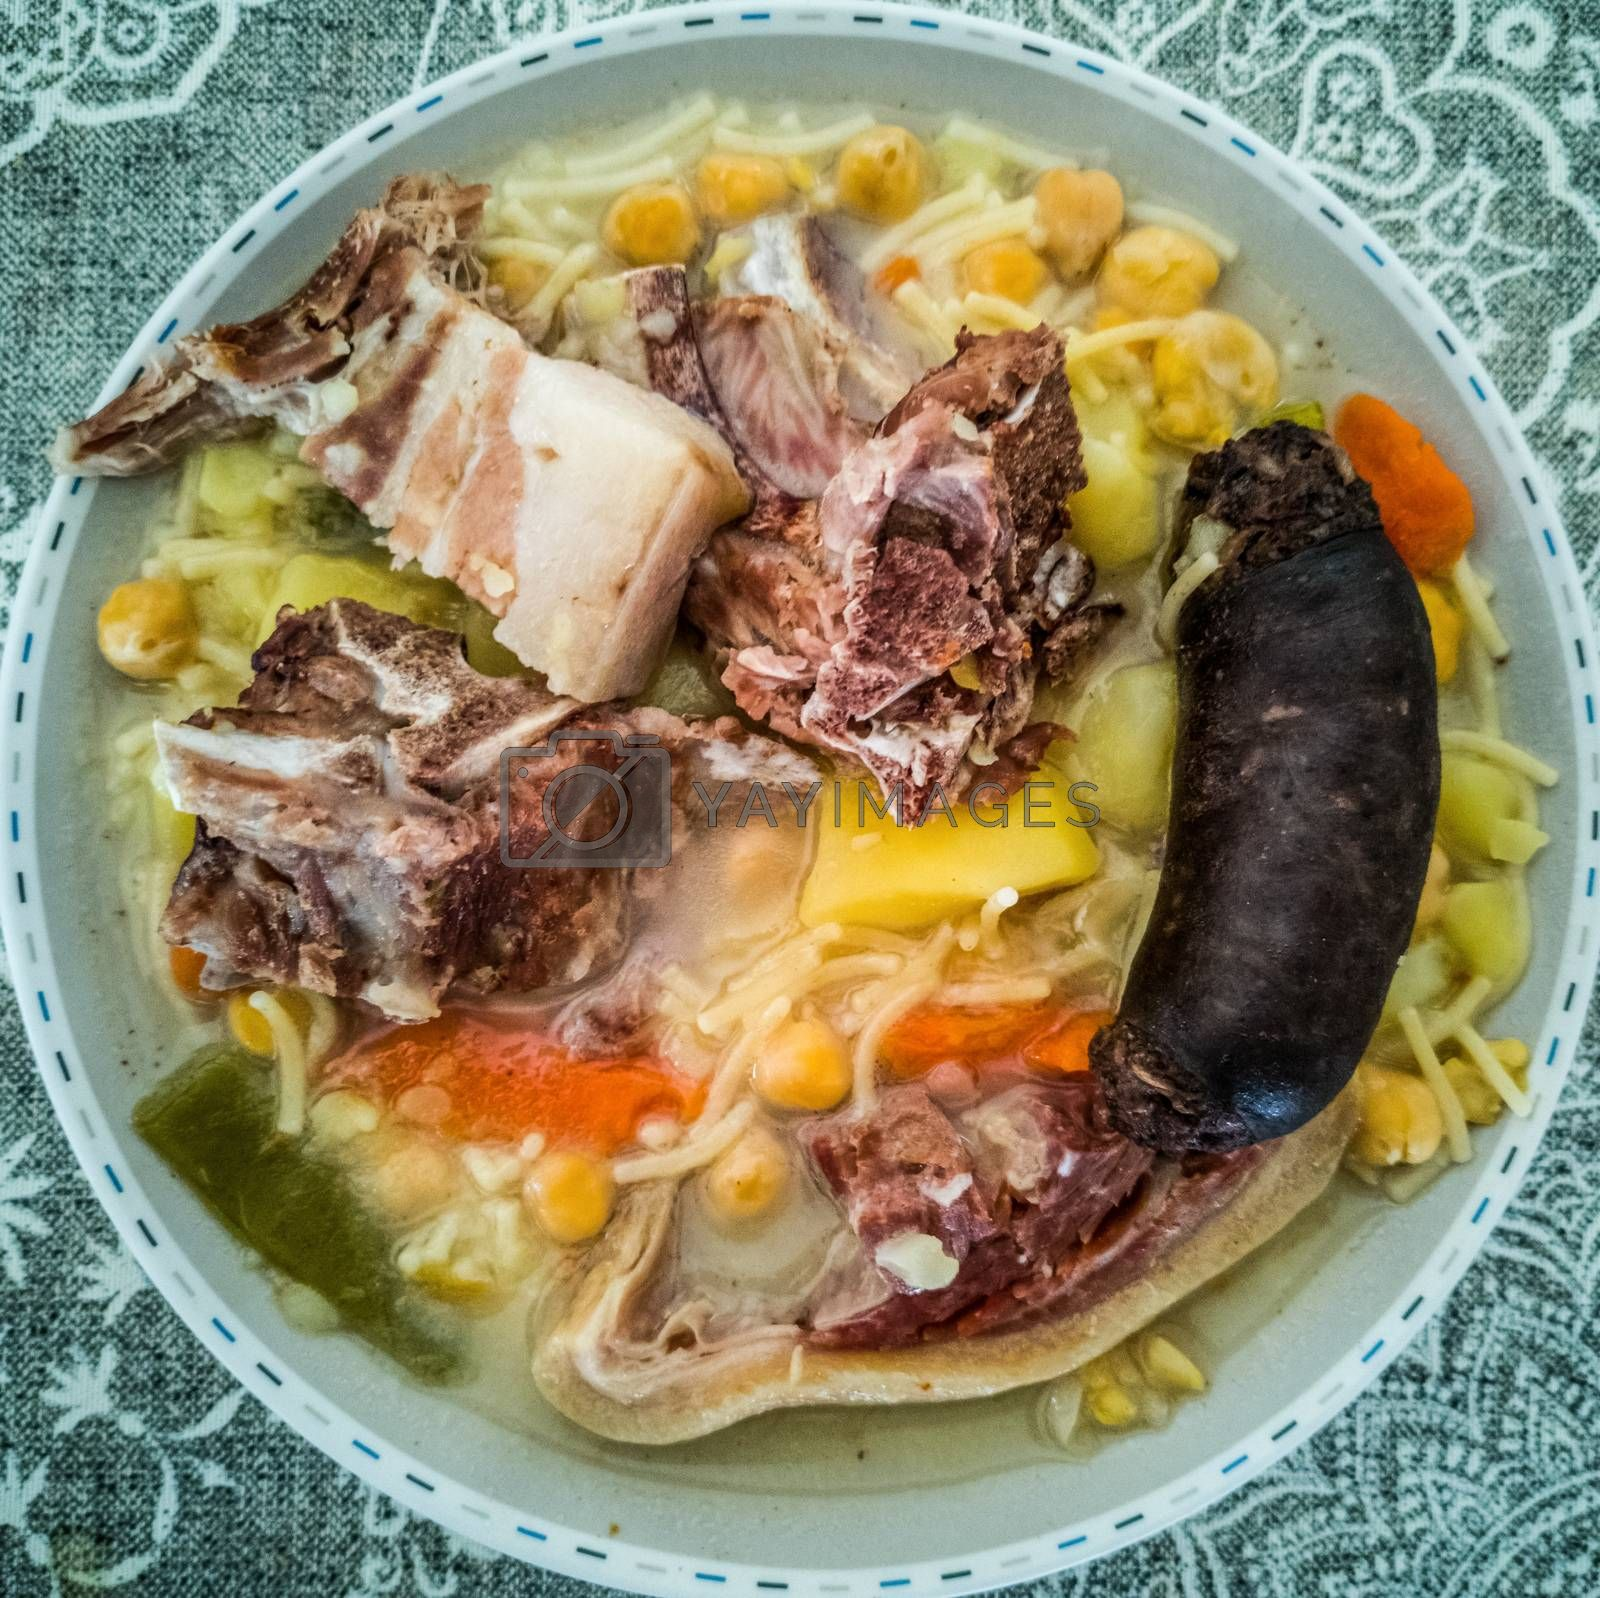 View of typical spanish food with meat and blood sausage